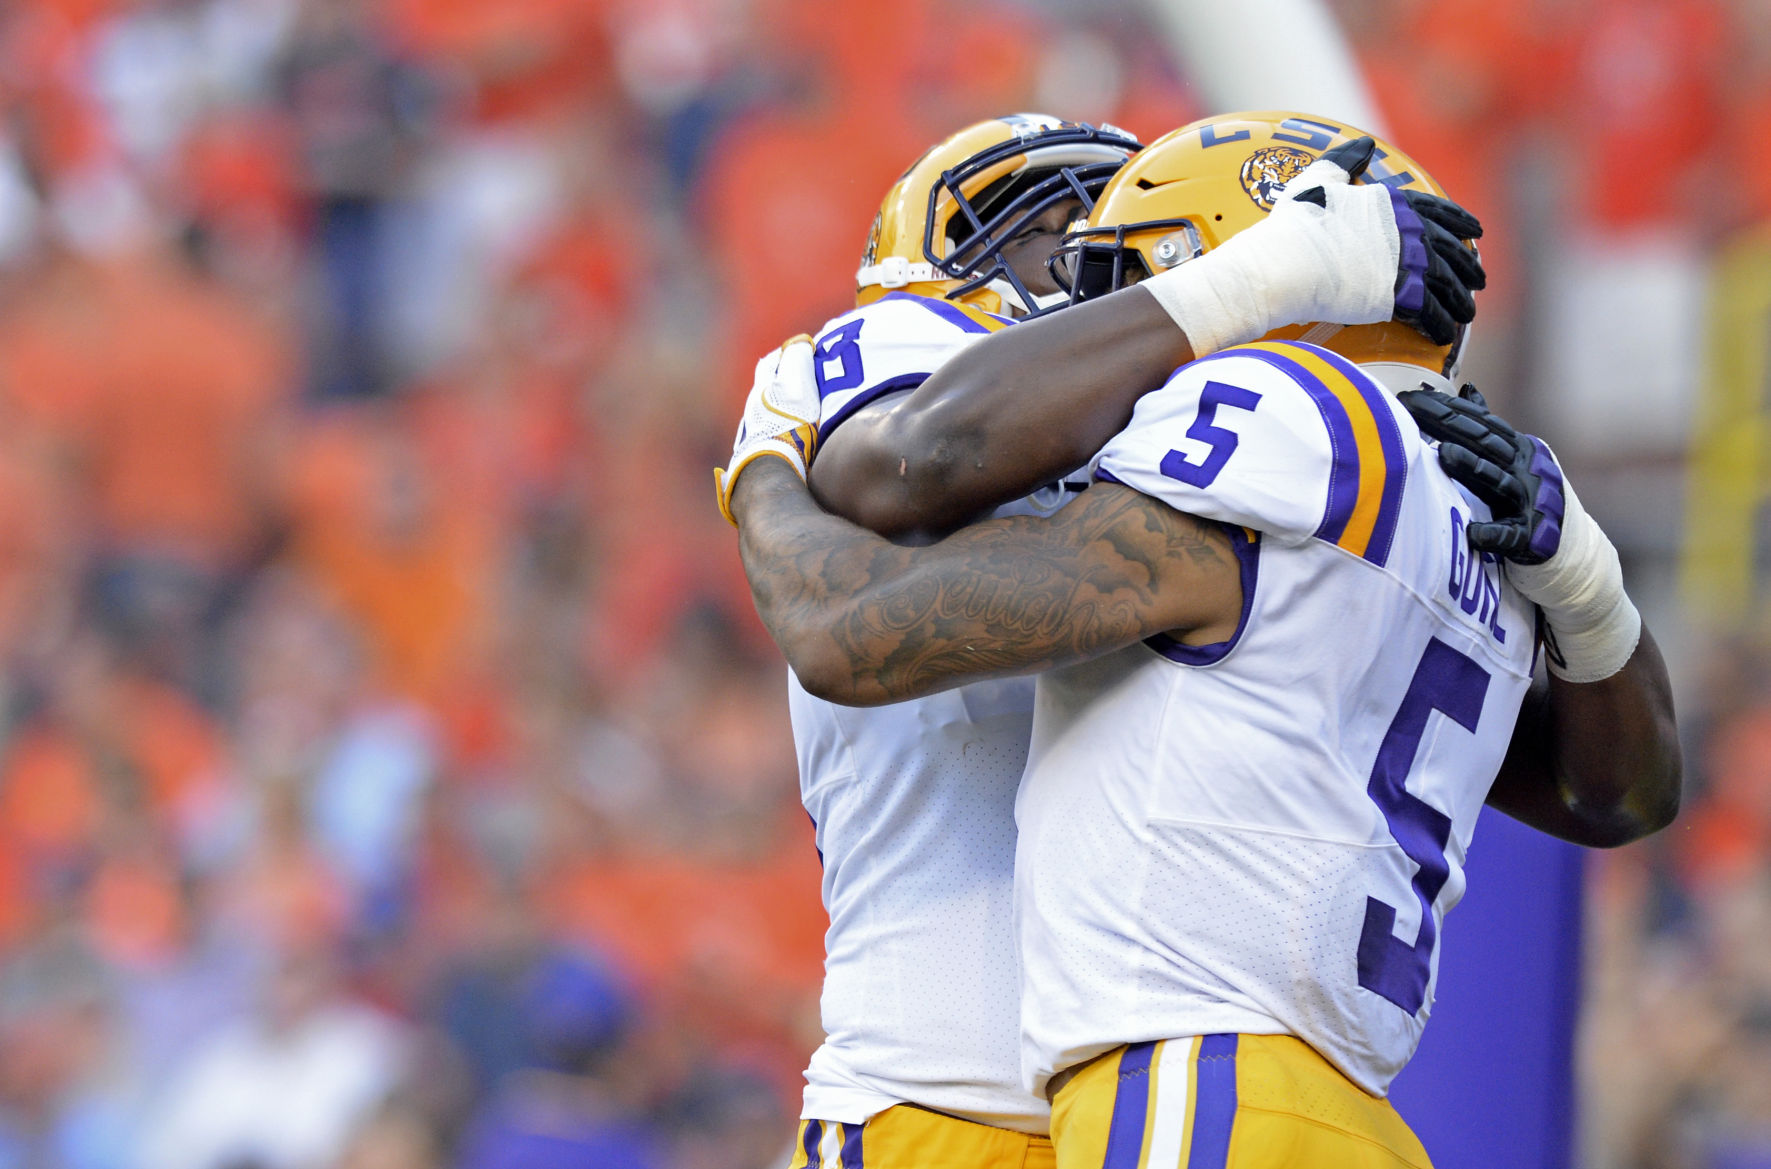 LSU paid Troy almost  $1 million to come and beat them